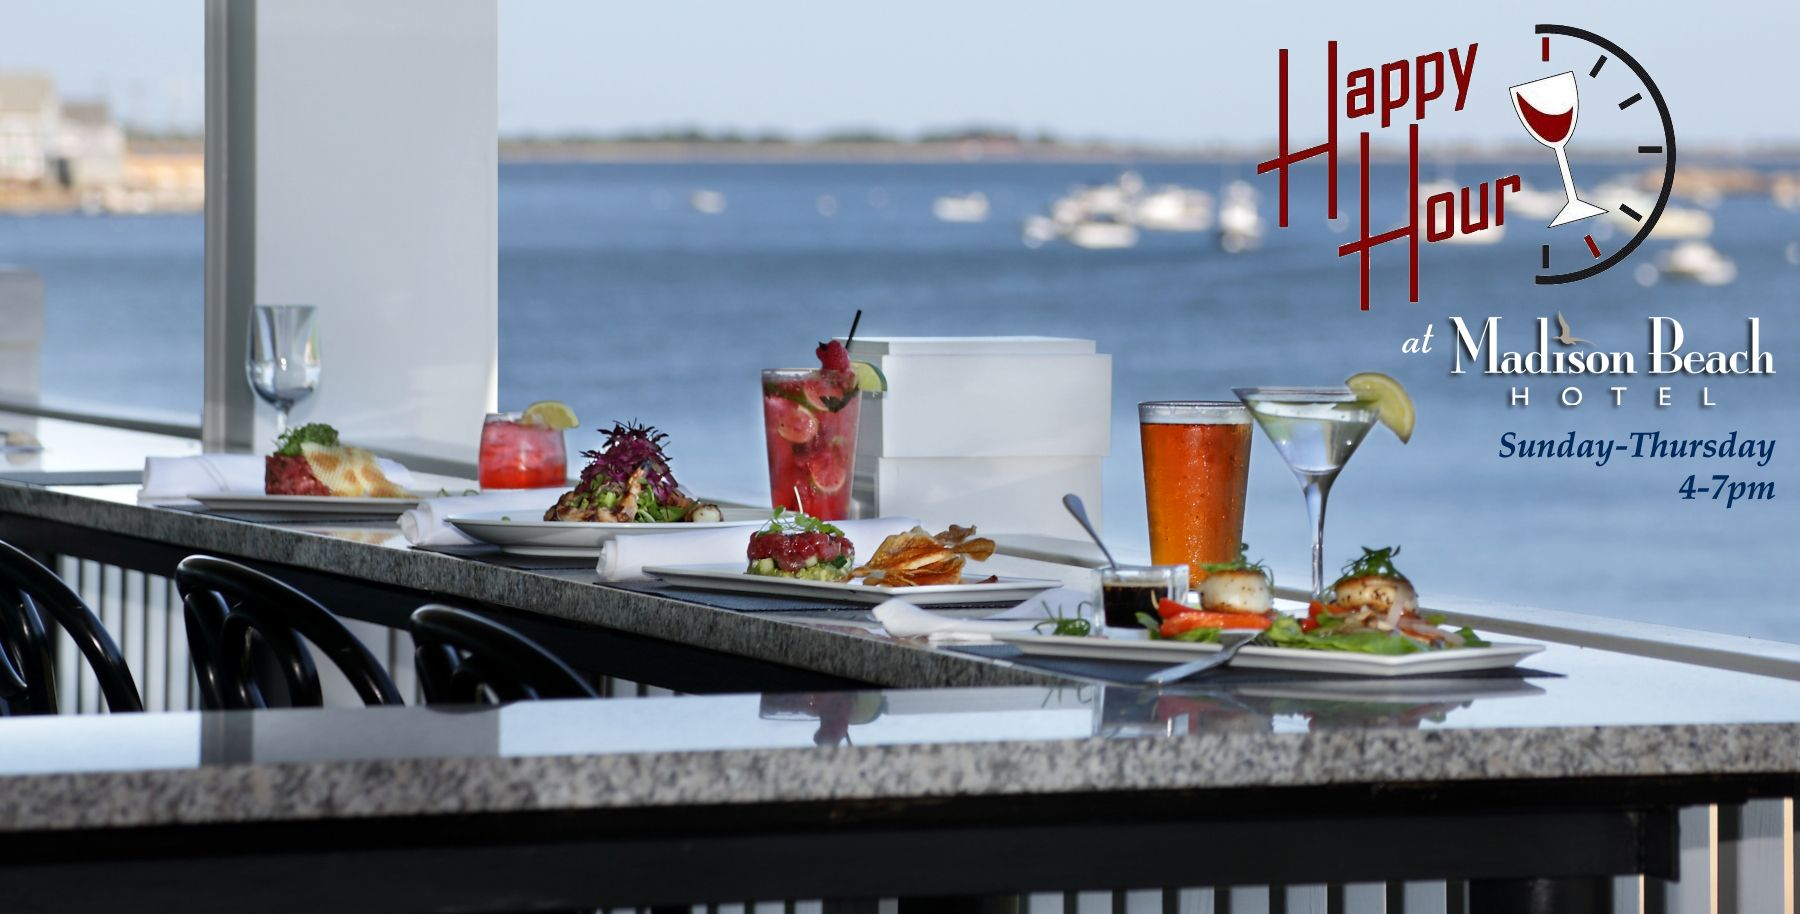 Announcing the new happy hour menu at the madison beach hotels wharf restaurant